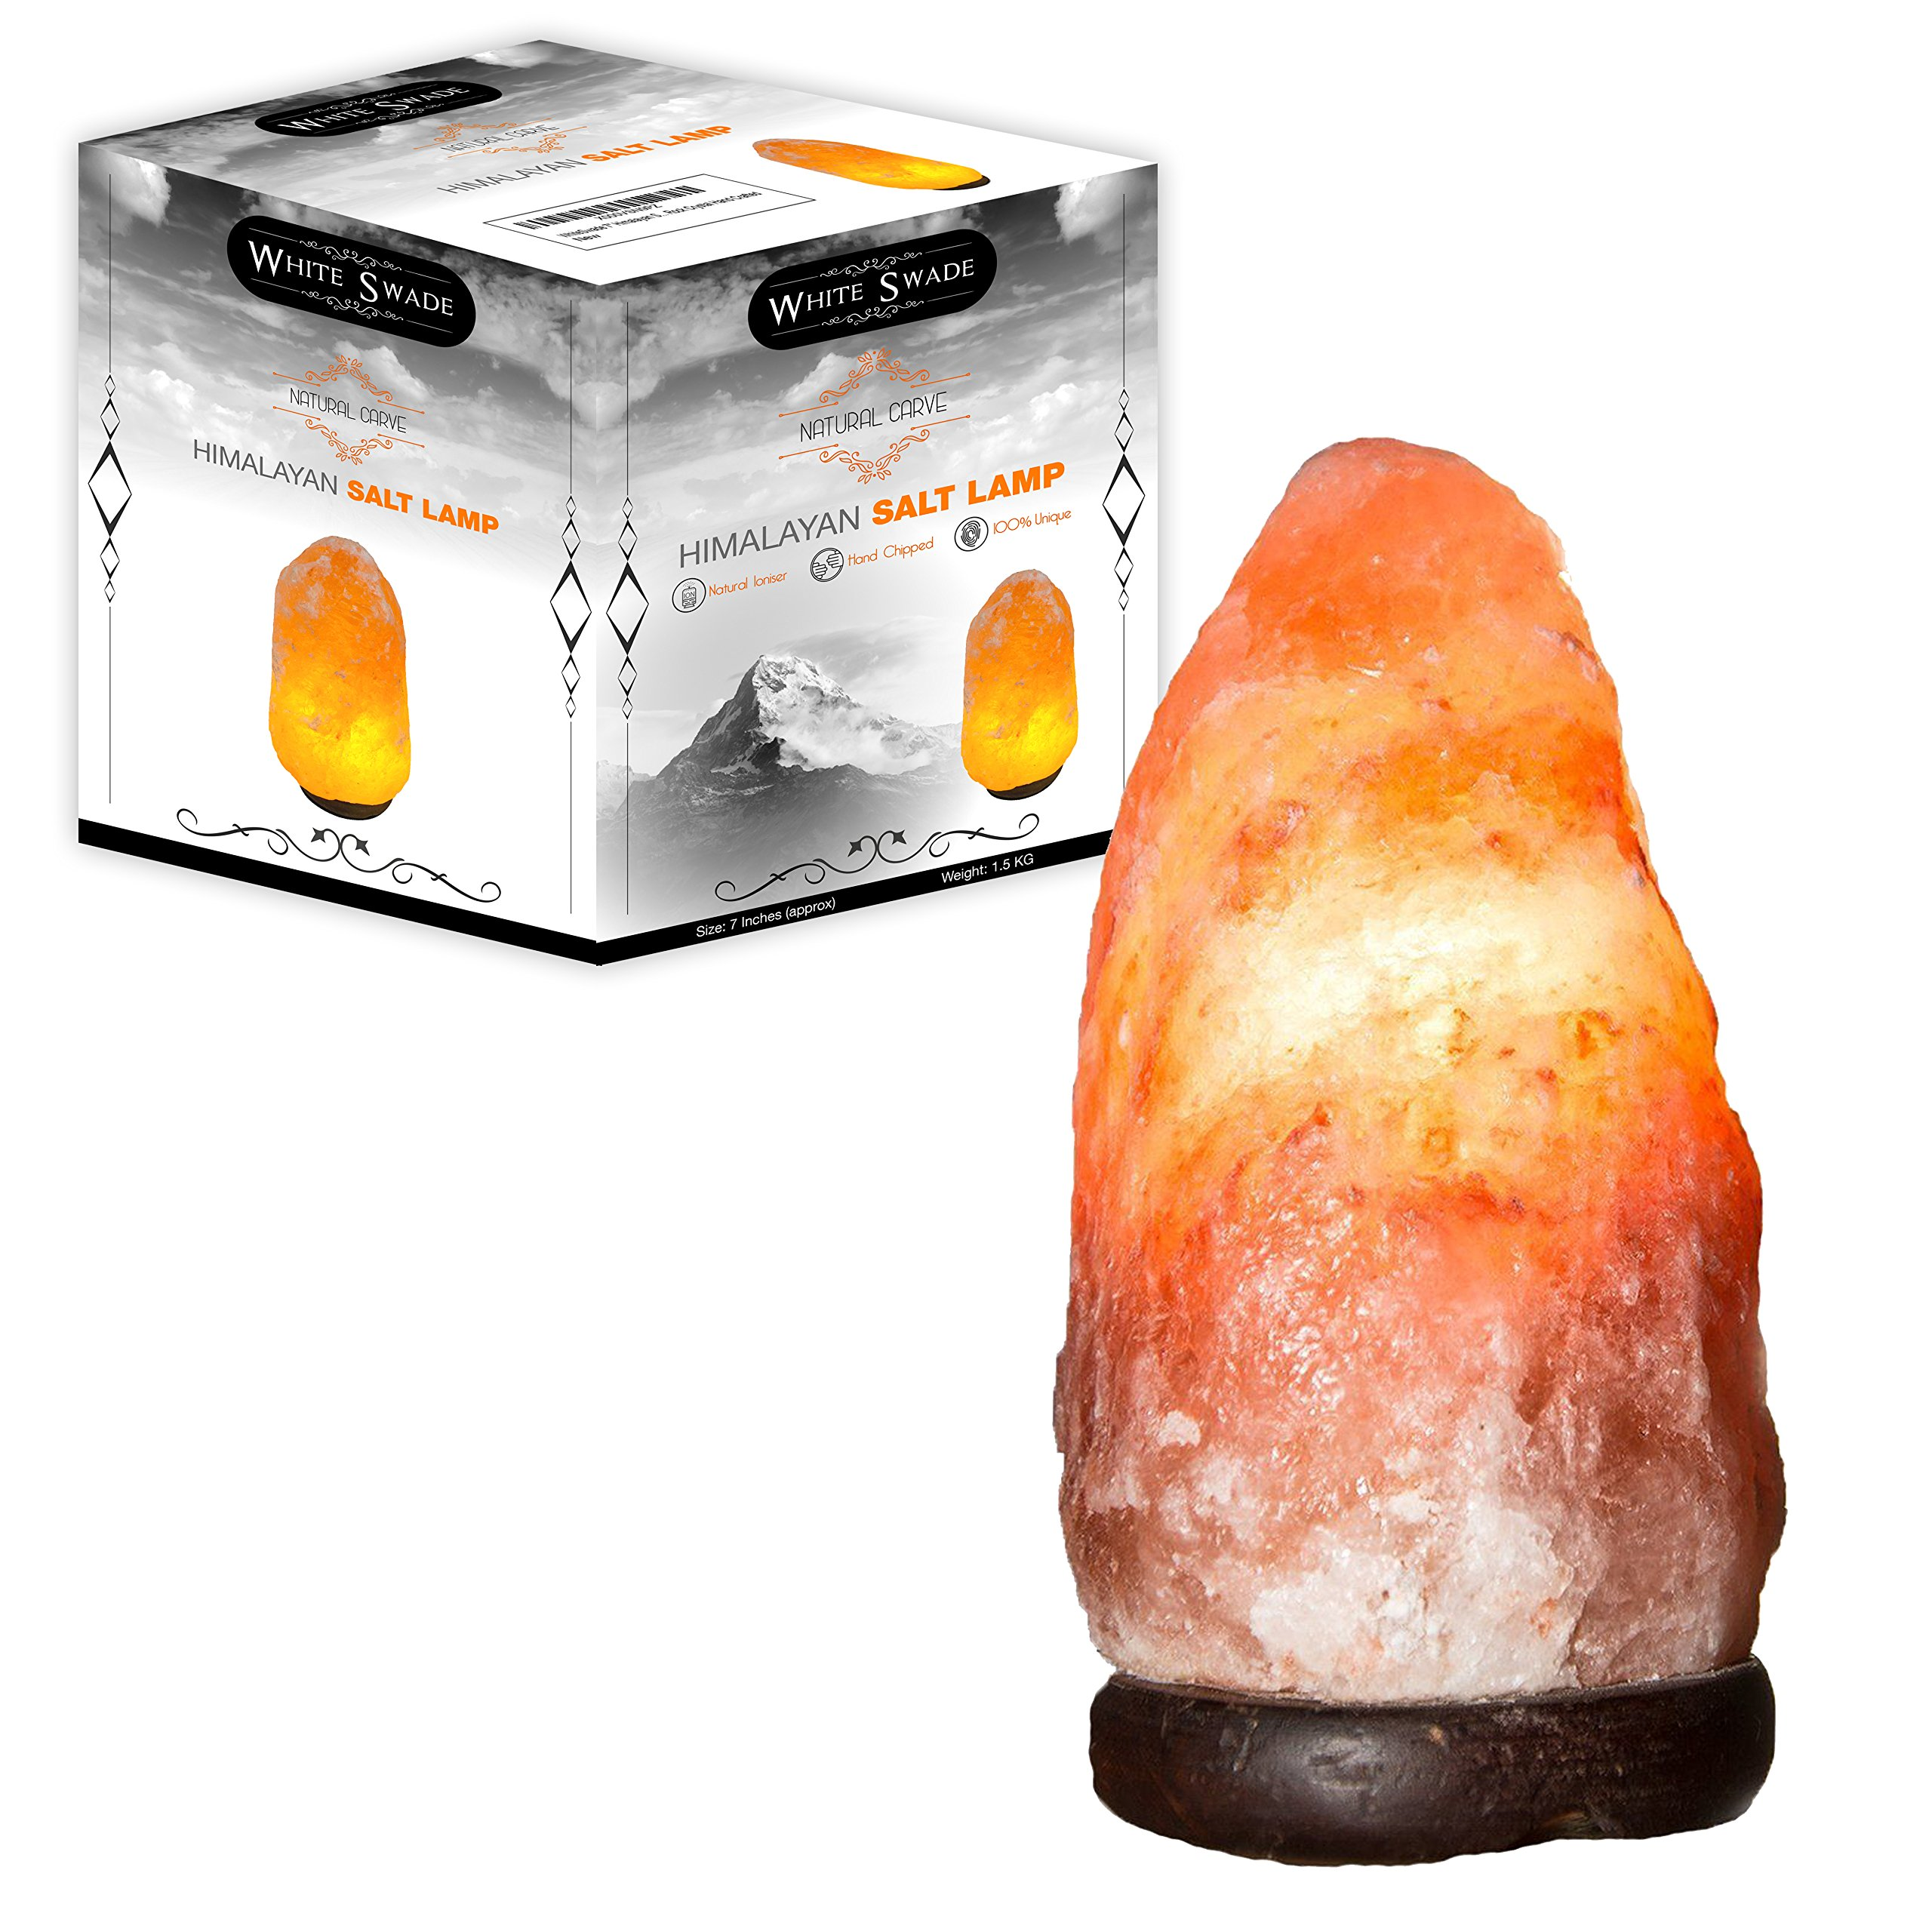 WhiteSwade 7 Inch Pink Himalayan Salt Lamp with UL CERTIFIED Dimmer Switch. Neem Wood Base and 15W Bulb, 6 ft Cord. Rock Crystal Naturally Hand Crafted. Air Ionizer and Purifier